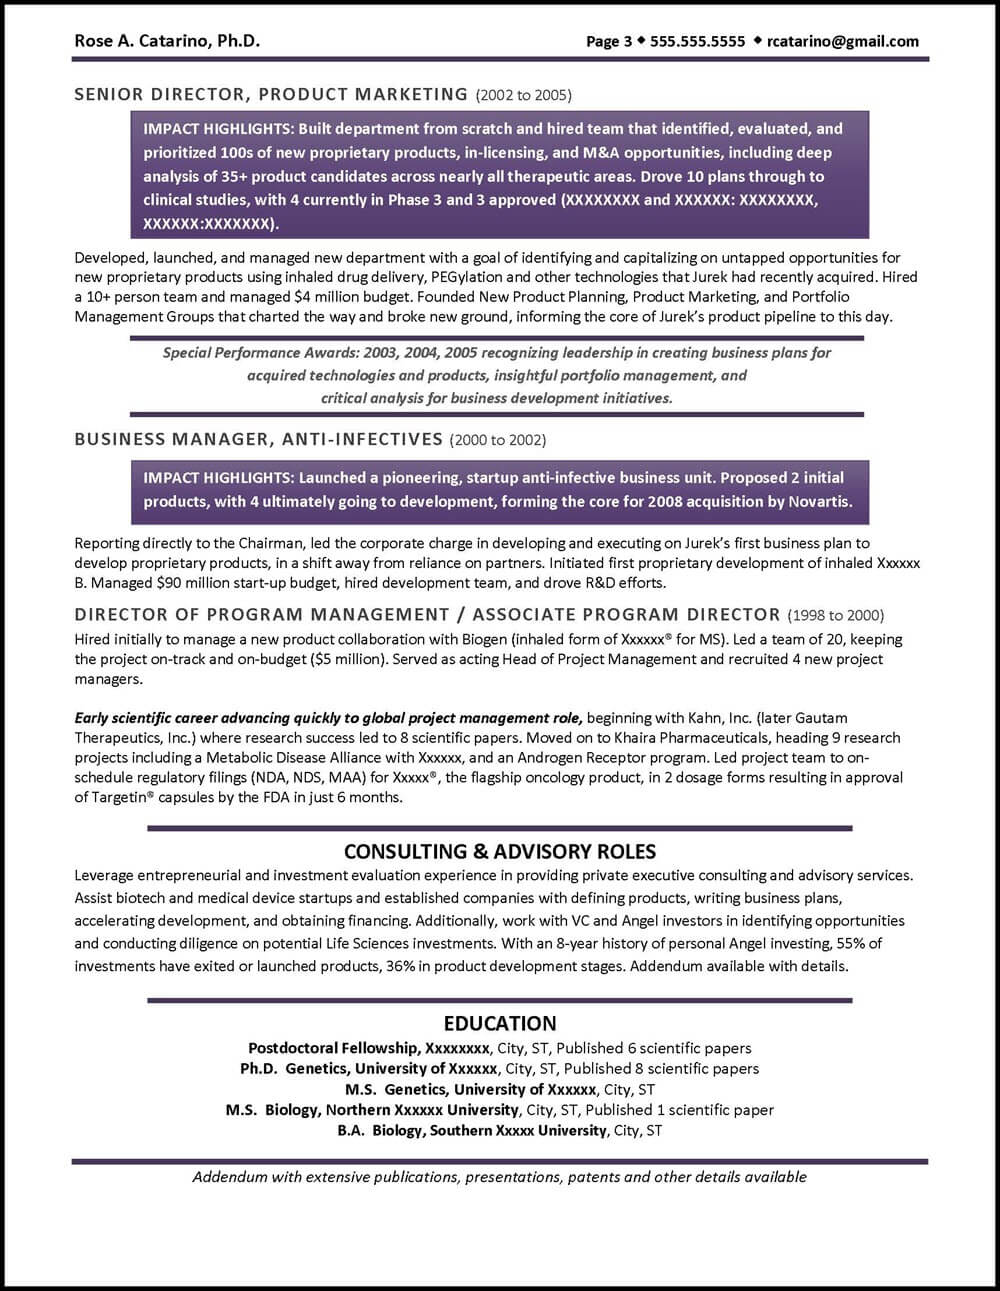 Example Executive Resume - Pharmaceutical Drug Development - pg3